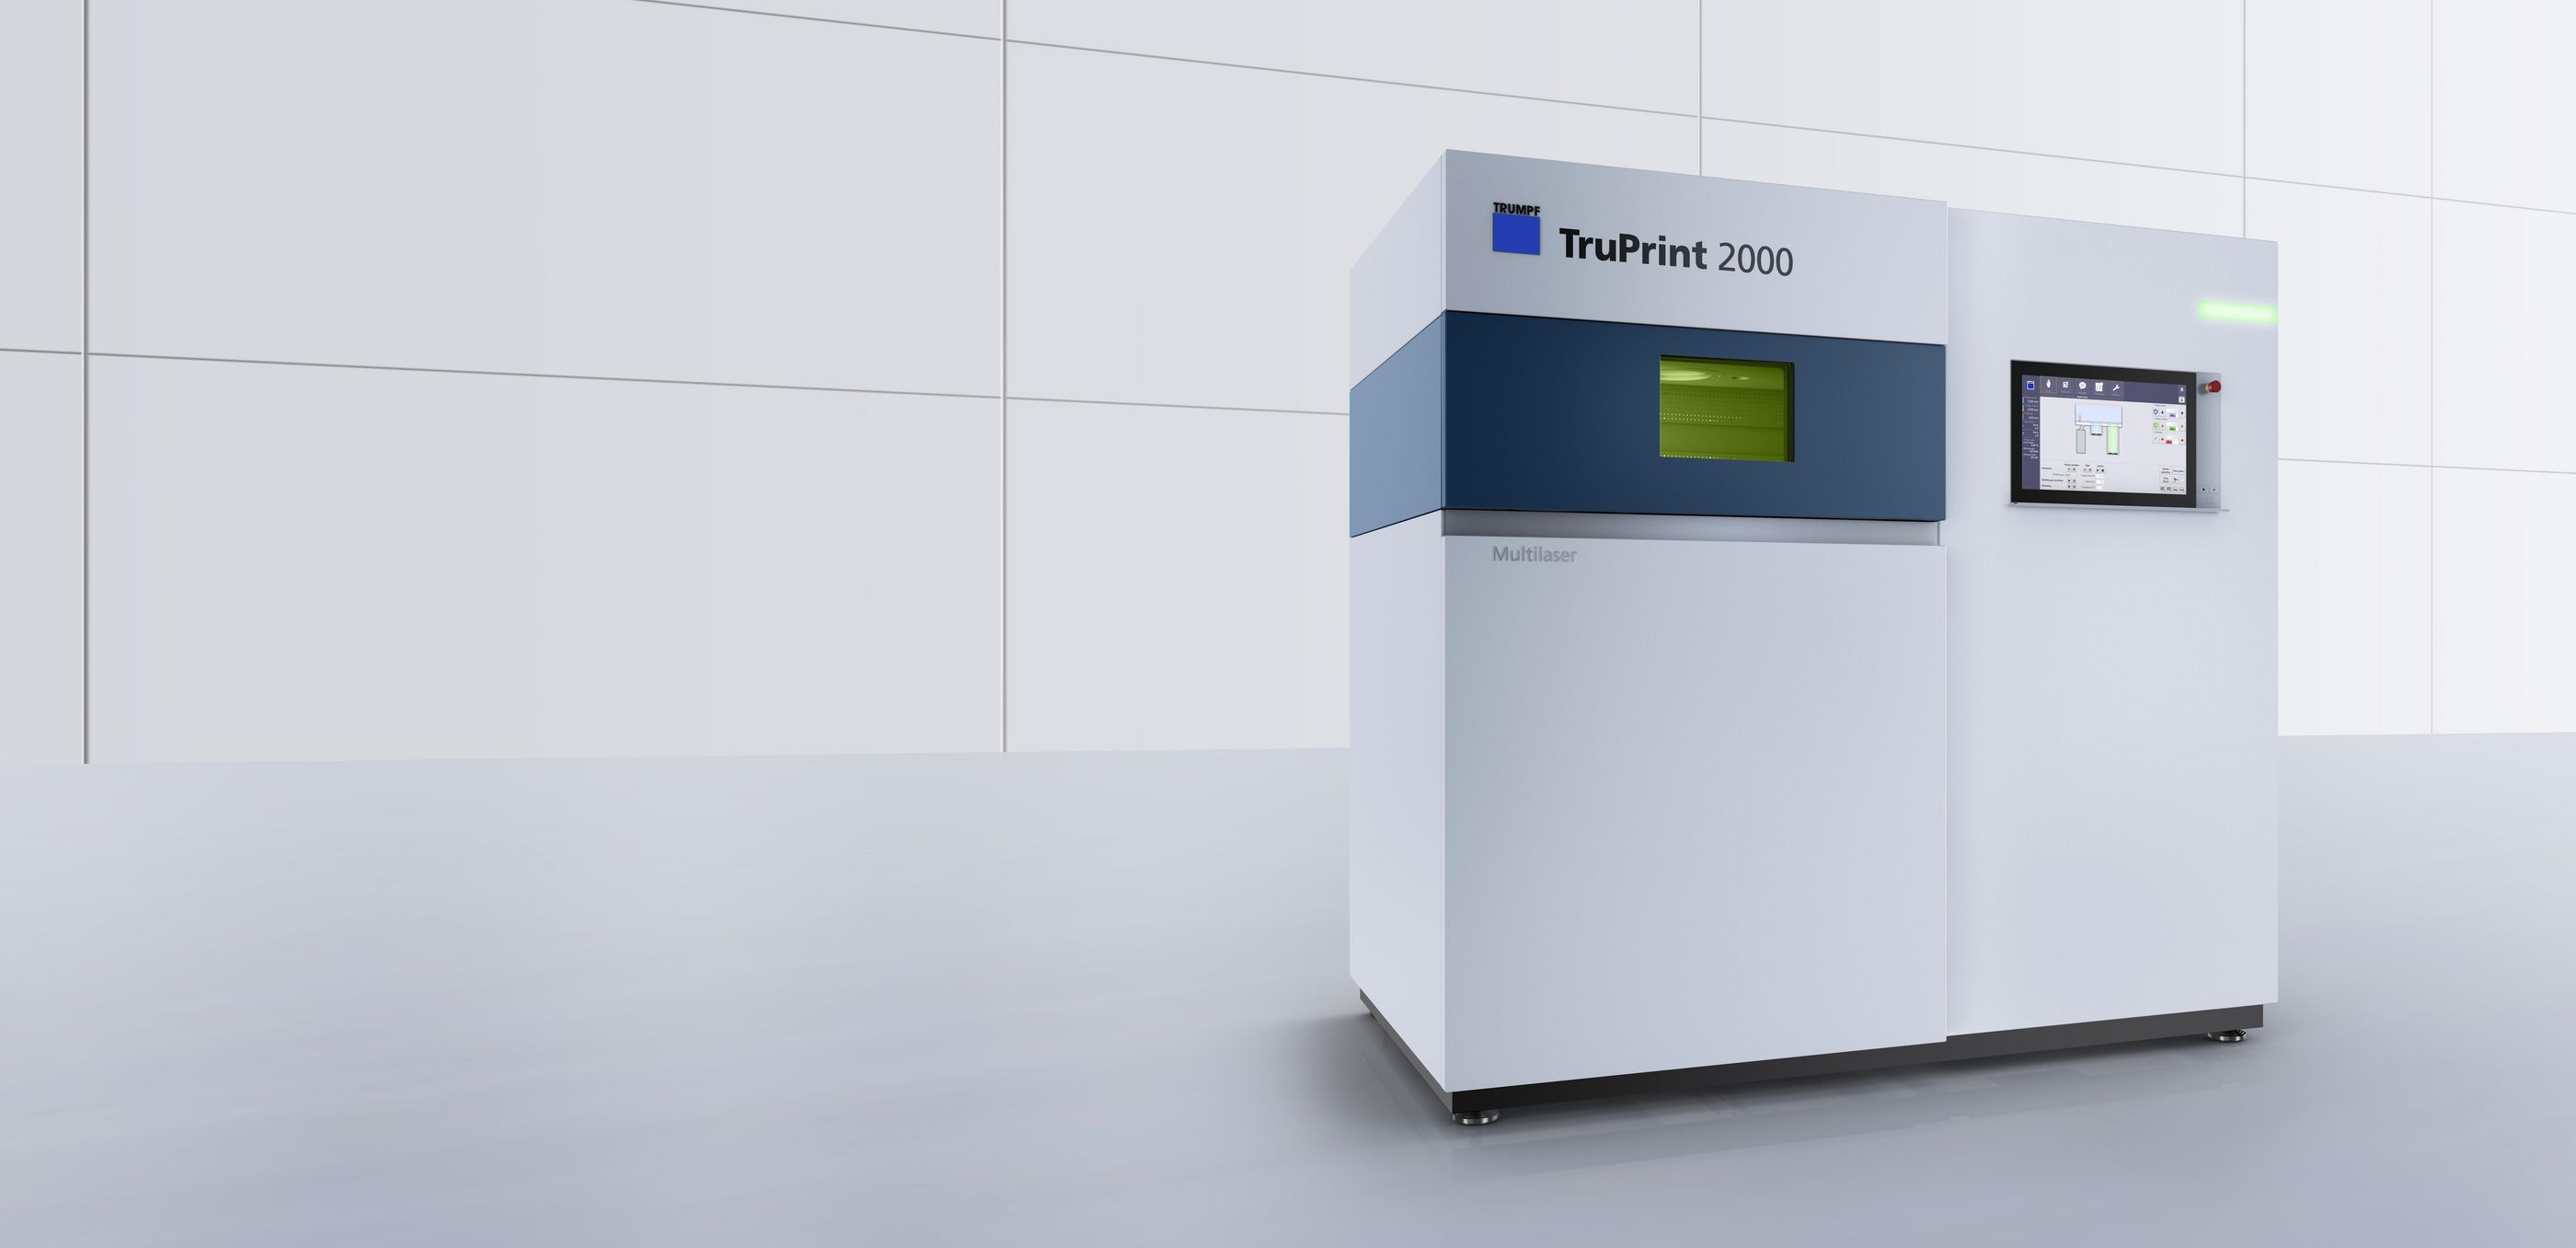 TruPrint 2000, economical 3D printing with premium quality from TRUMPF